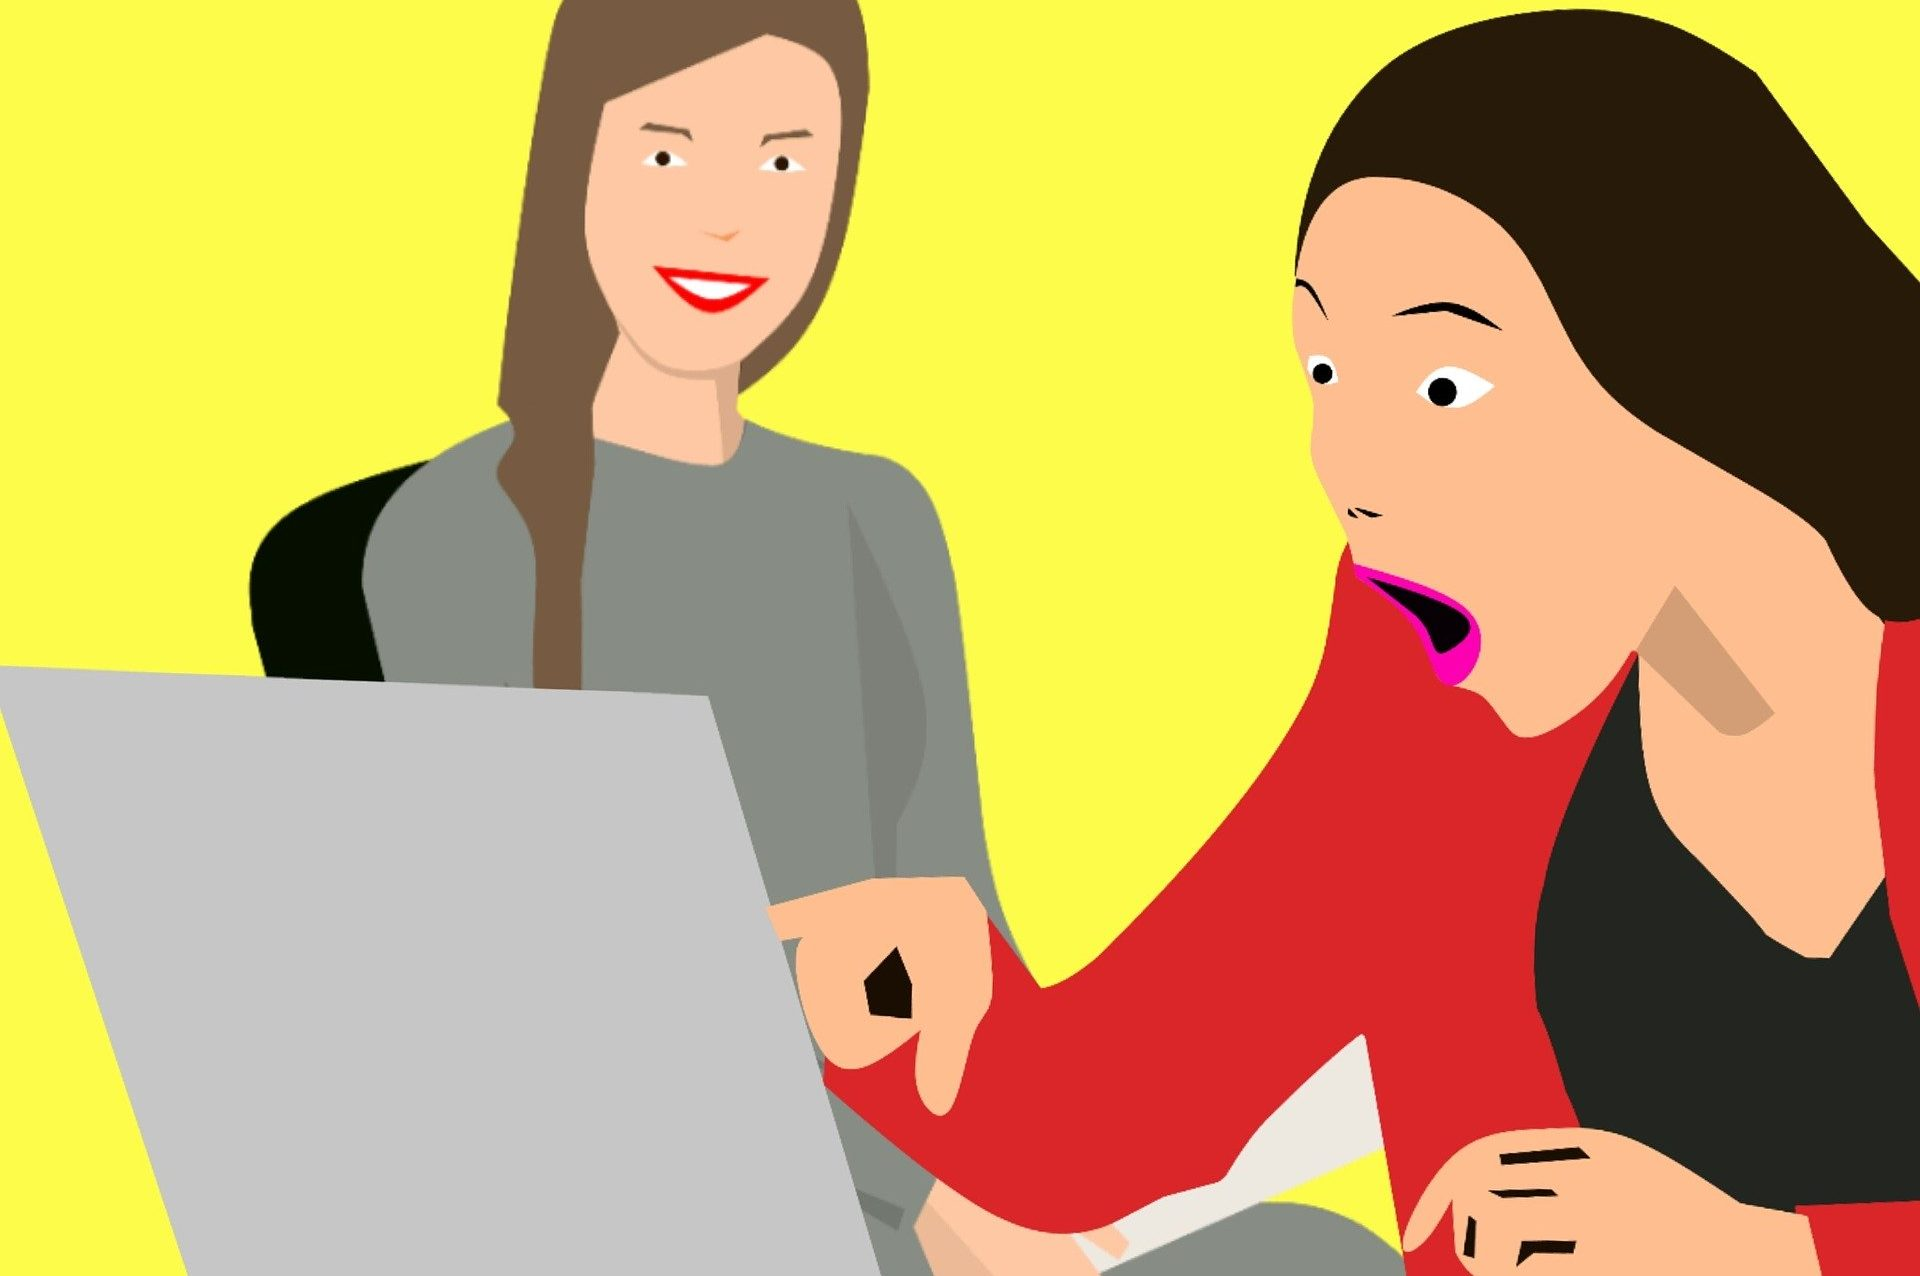 A drawing of two female employees looking at something on a laptop